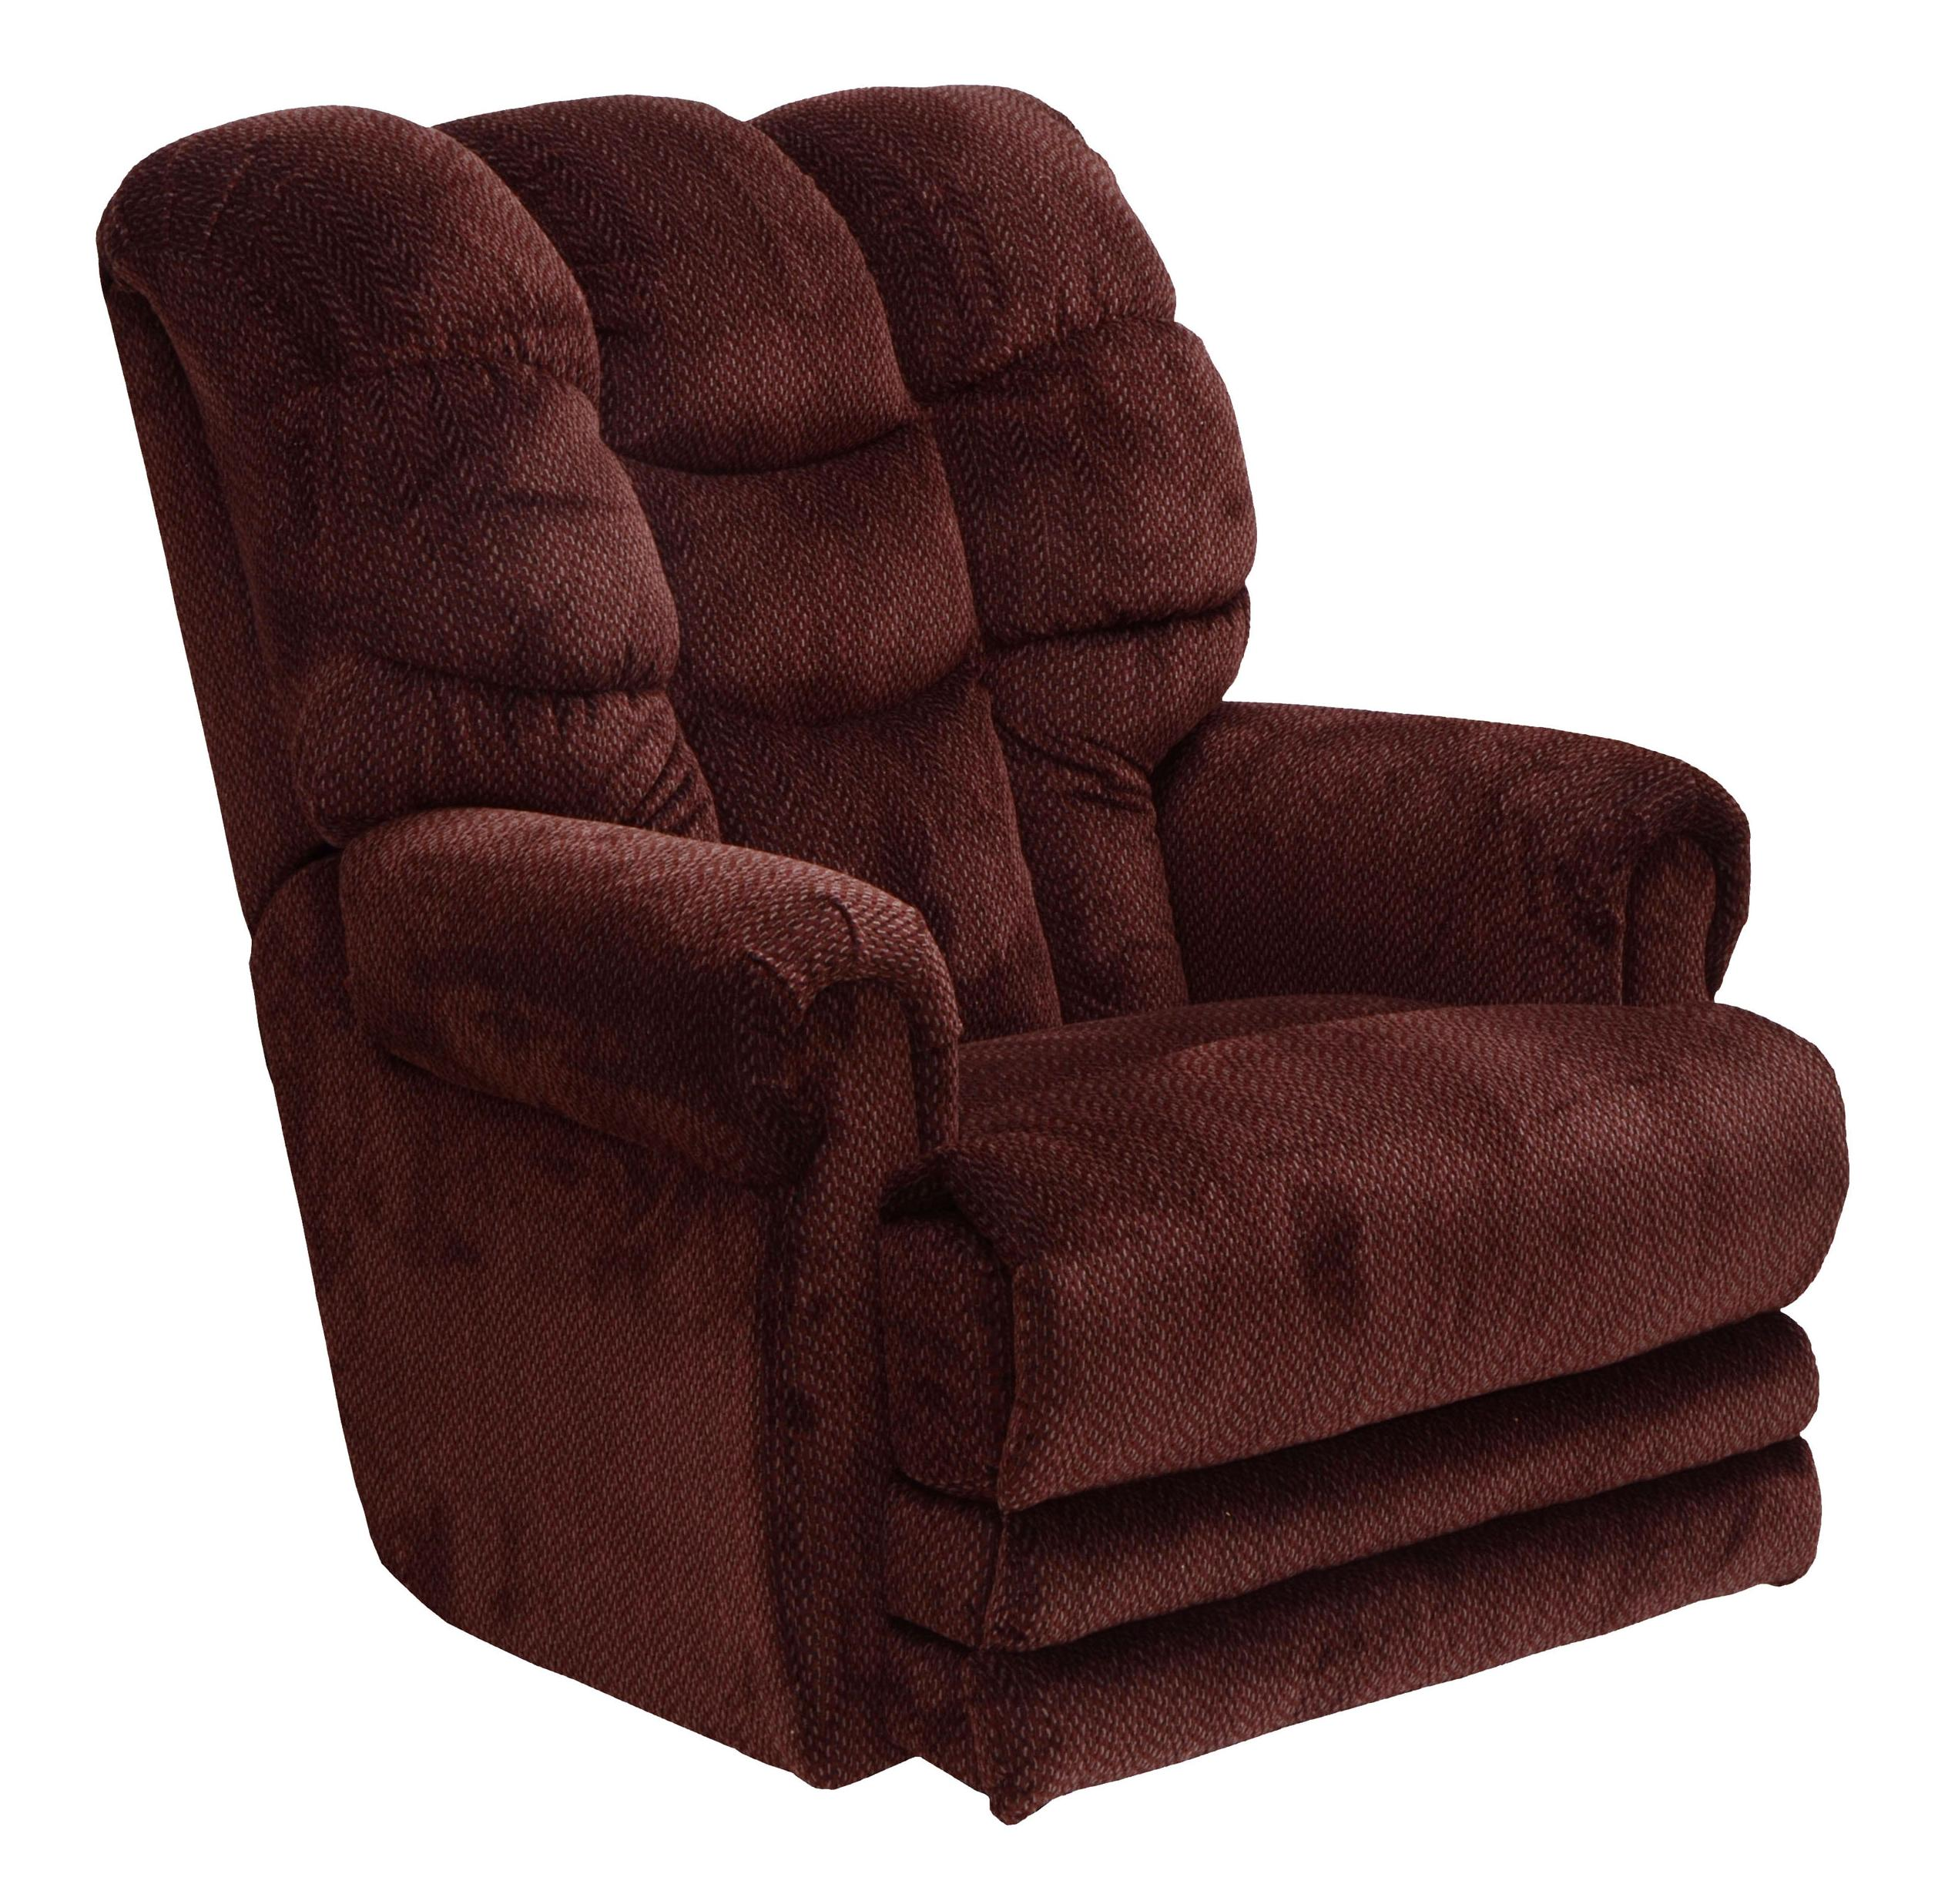 Catnapper Motion Chairs and Recliners Malone Lay Flat Recliner - Item Number: 4257-vino